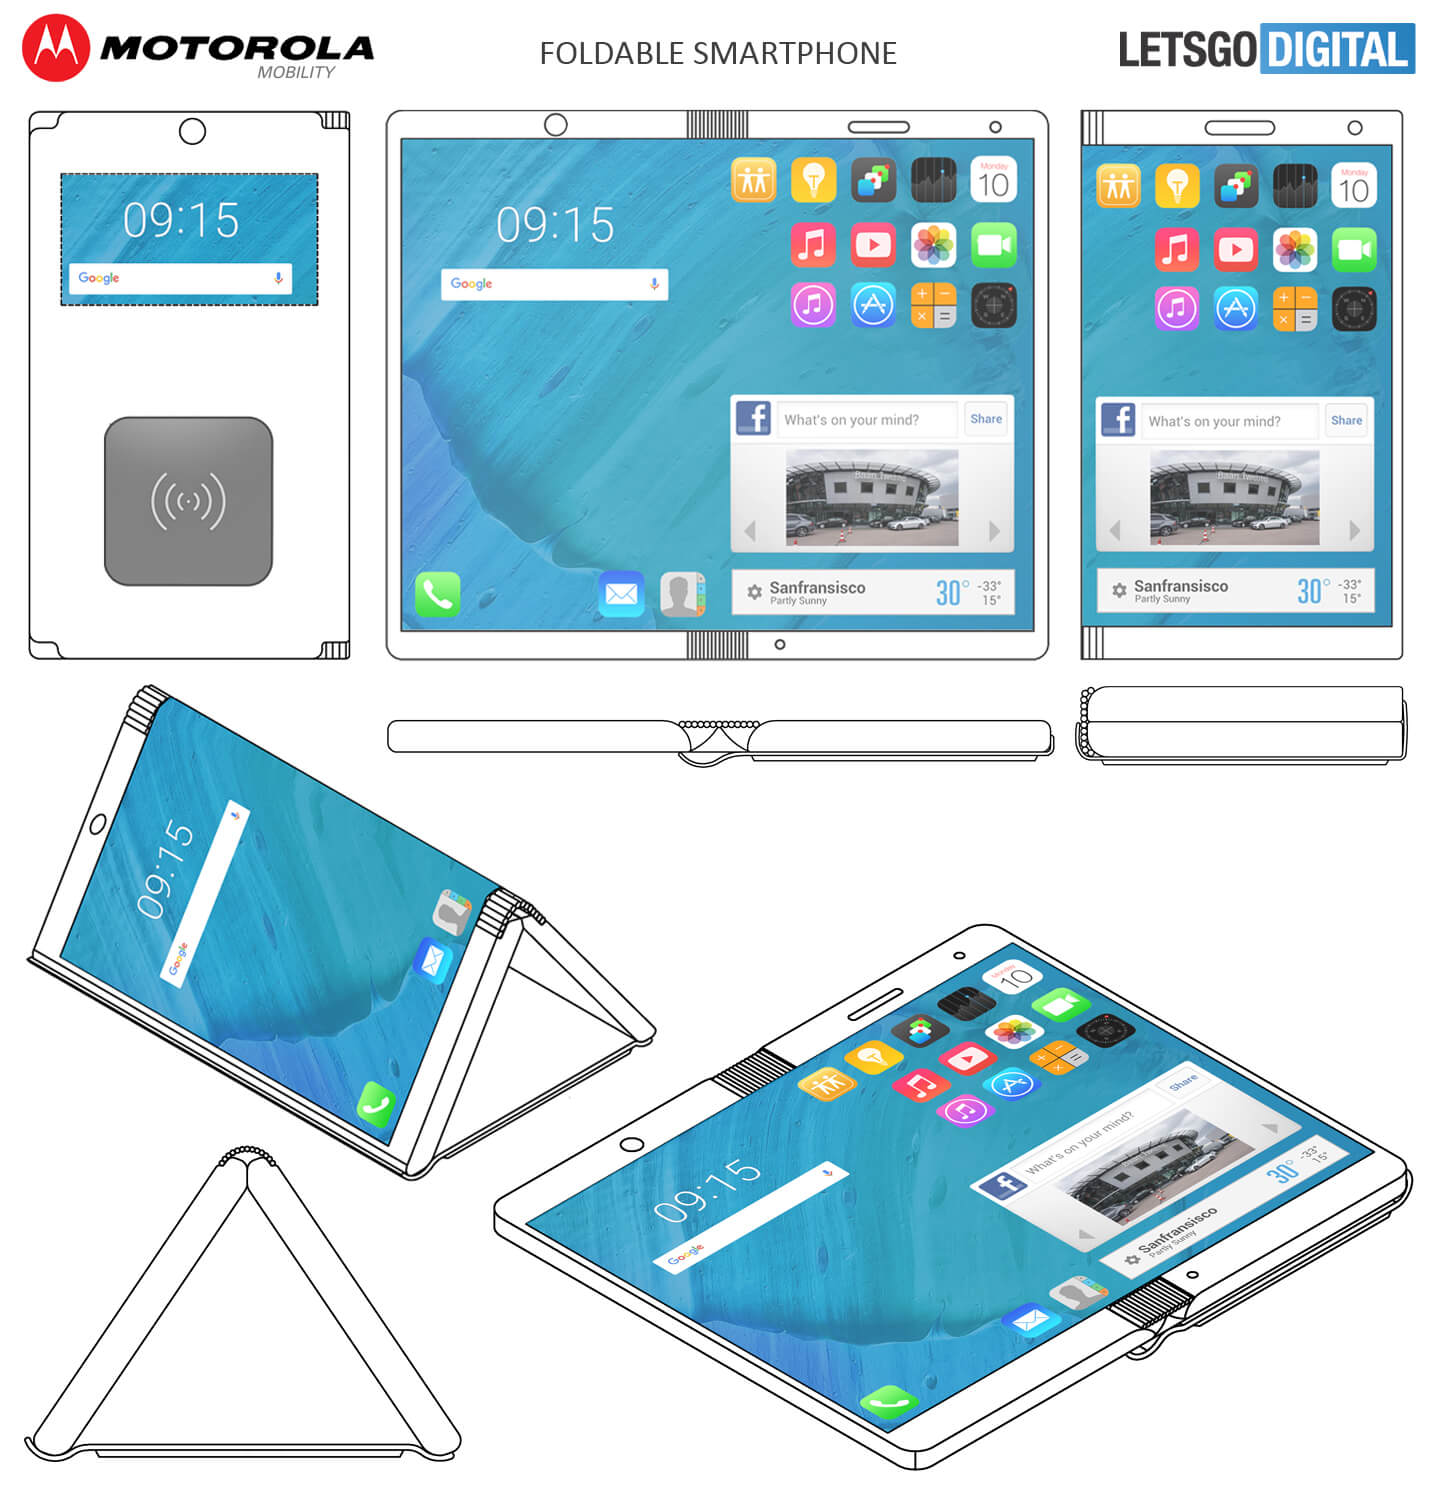 Motorola Patented A Foldable Smartphone